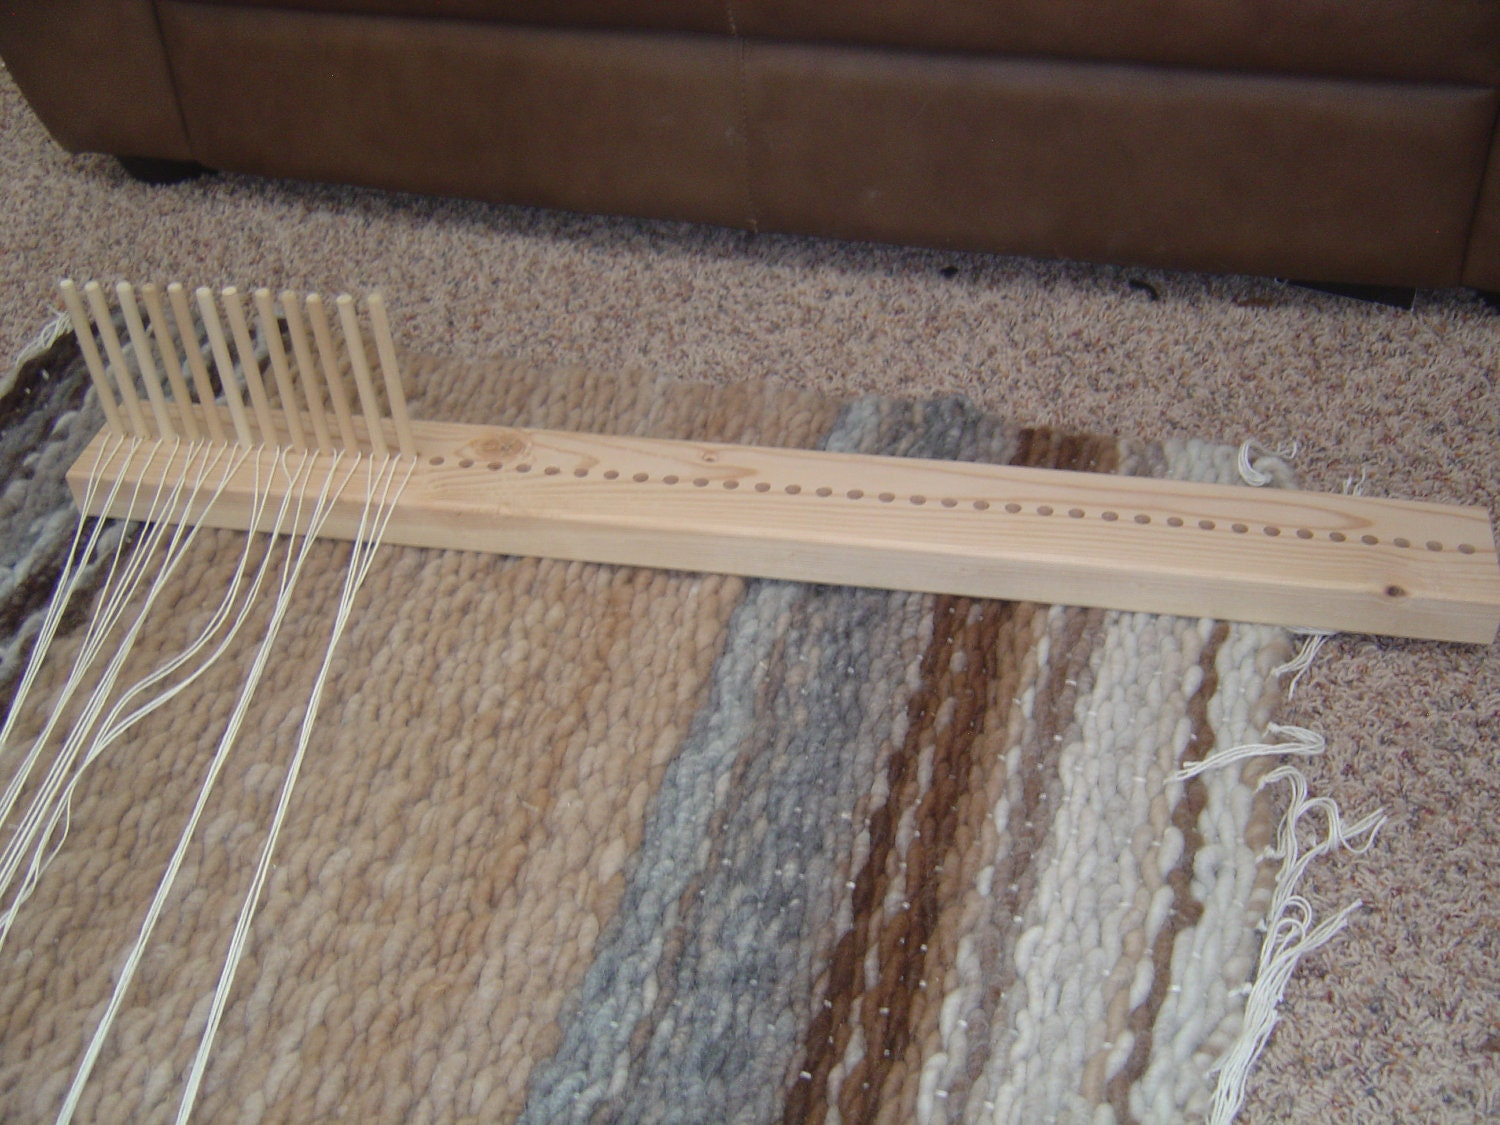 Peg Loom Weave Your Own Rugs Simply And Easily With Our